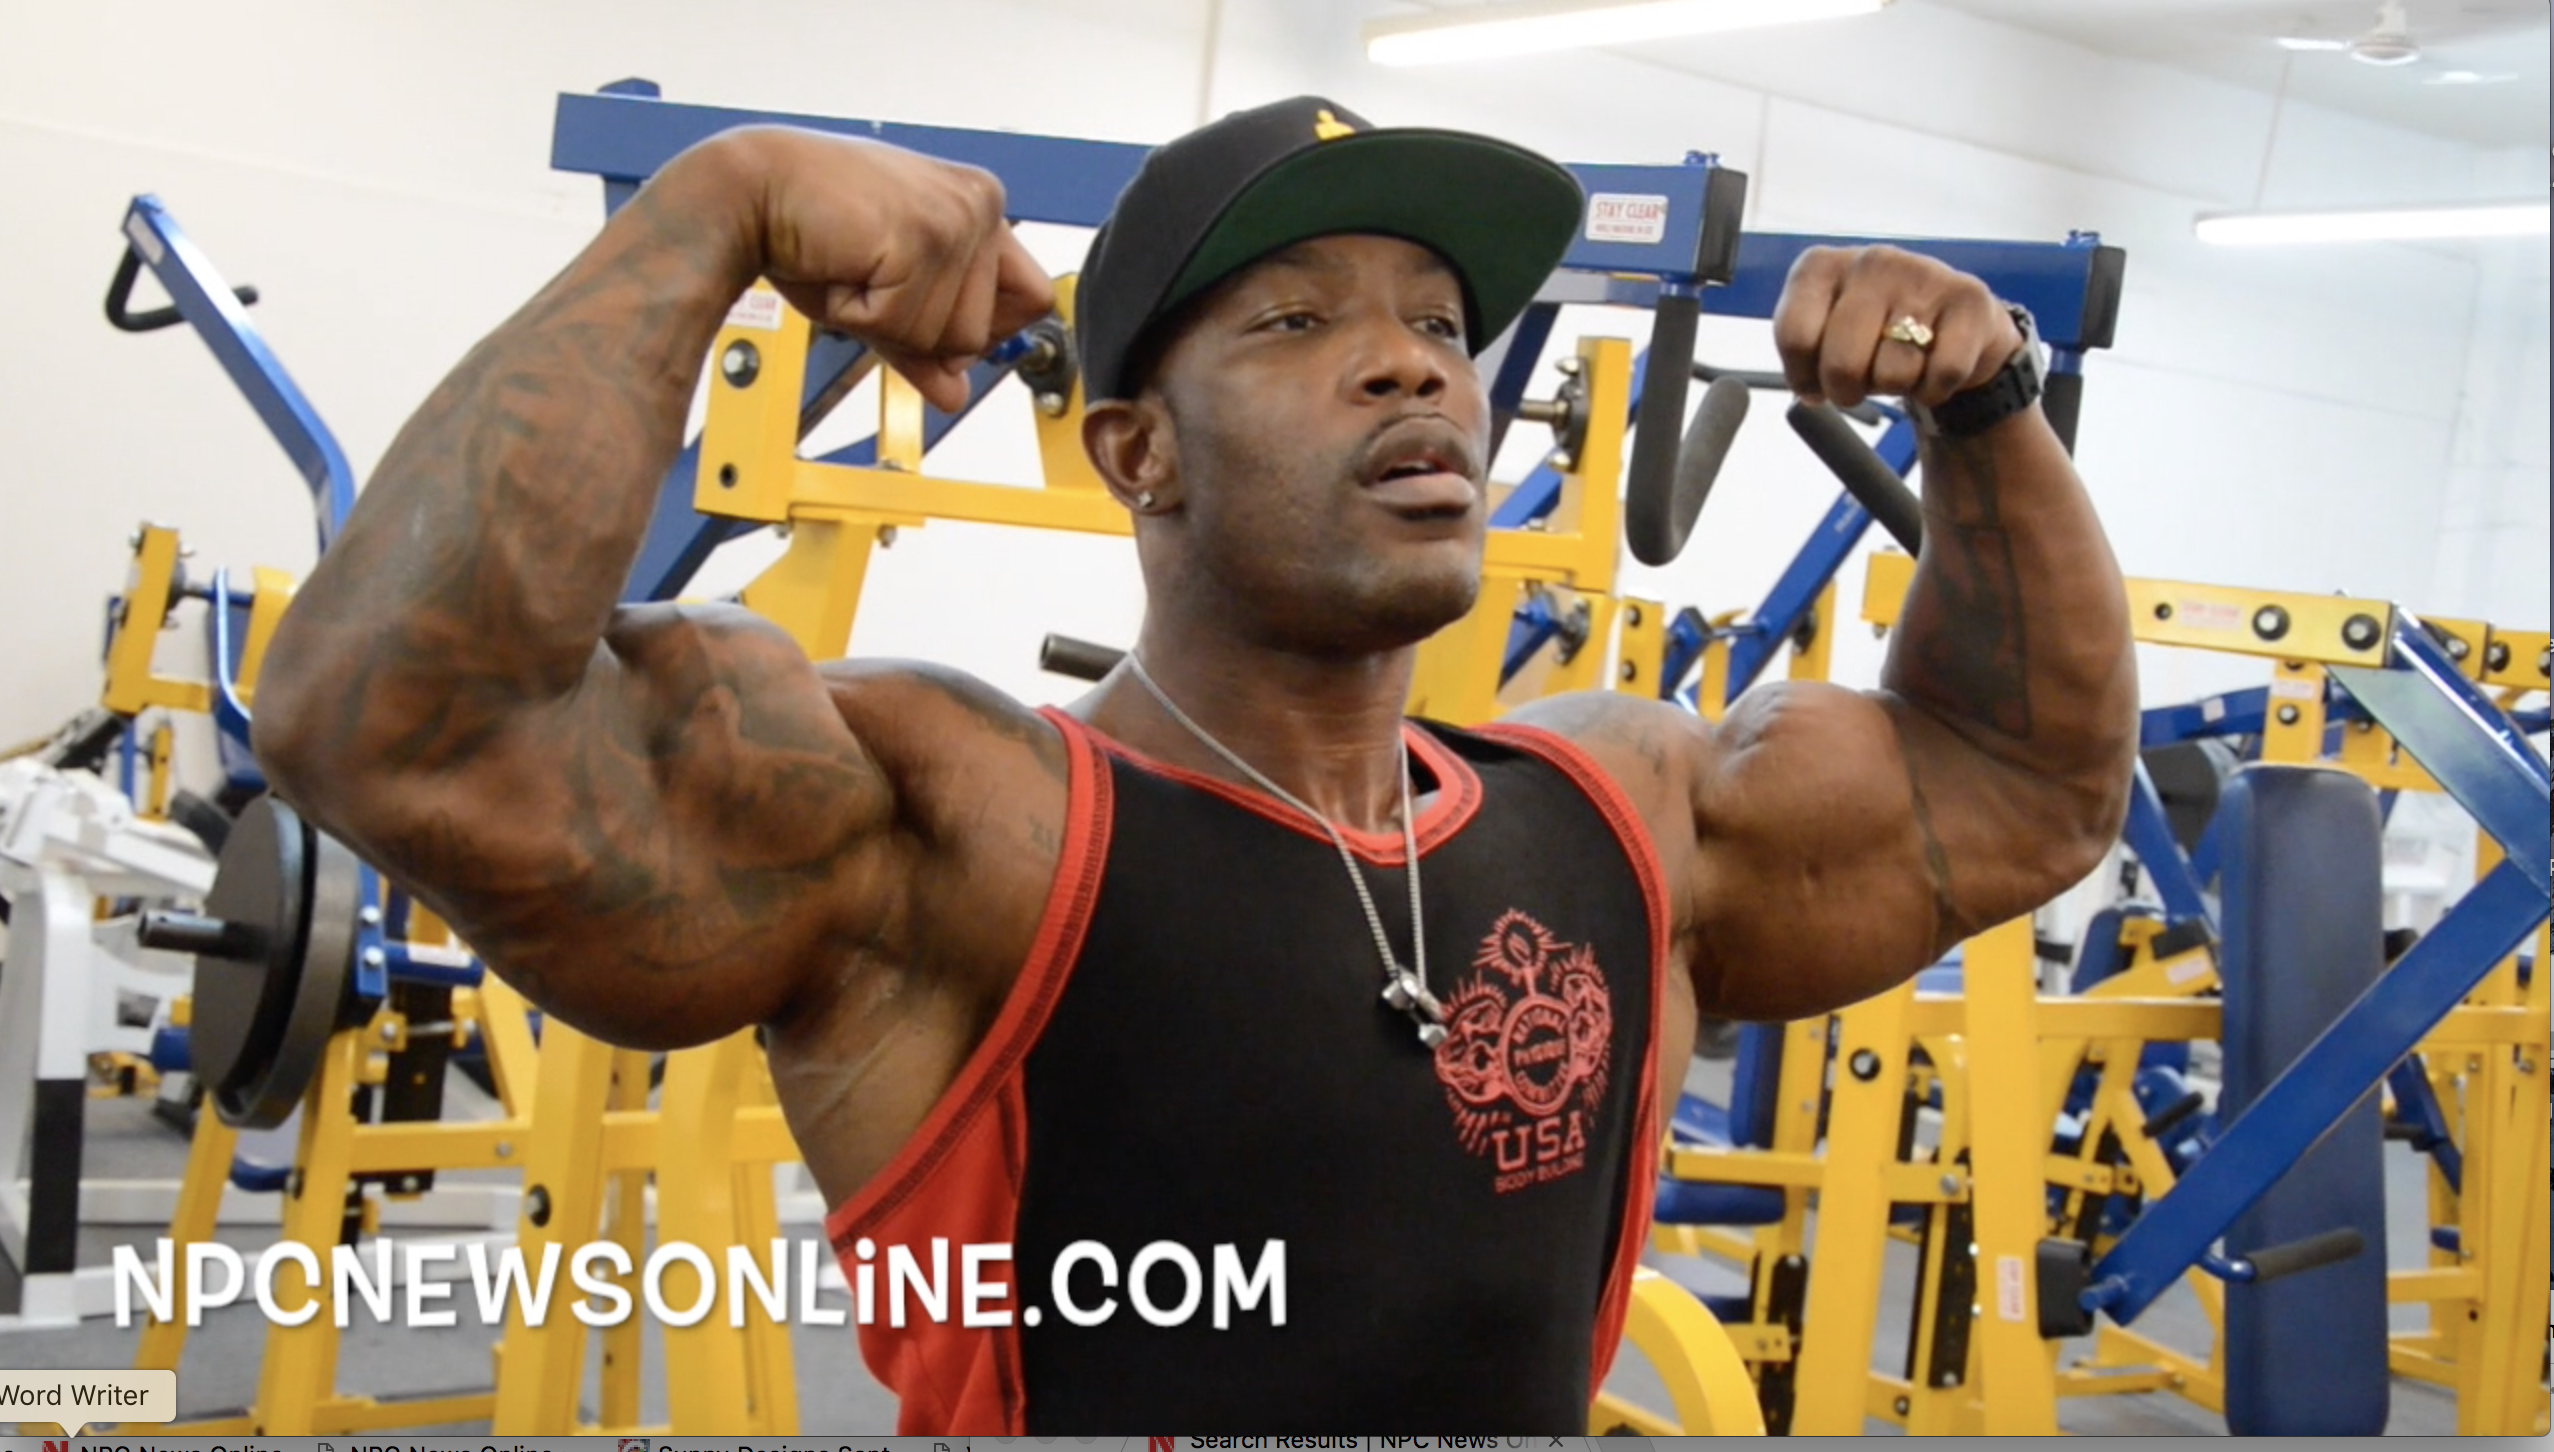 IFBB Men's Physique Pro Antoine Williams Chest/Shoulder/Triceps Workout At The NPC Photo Gym